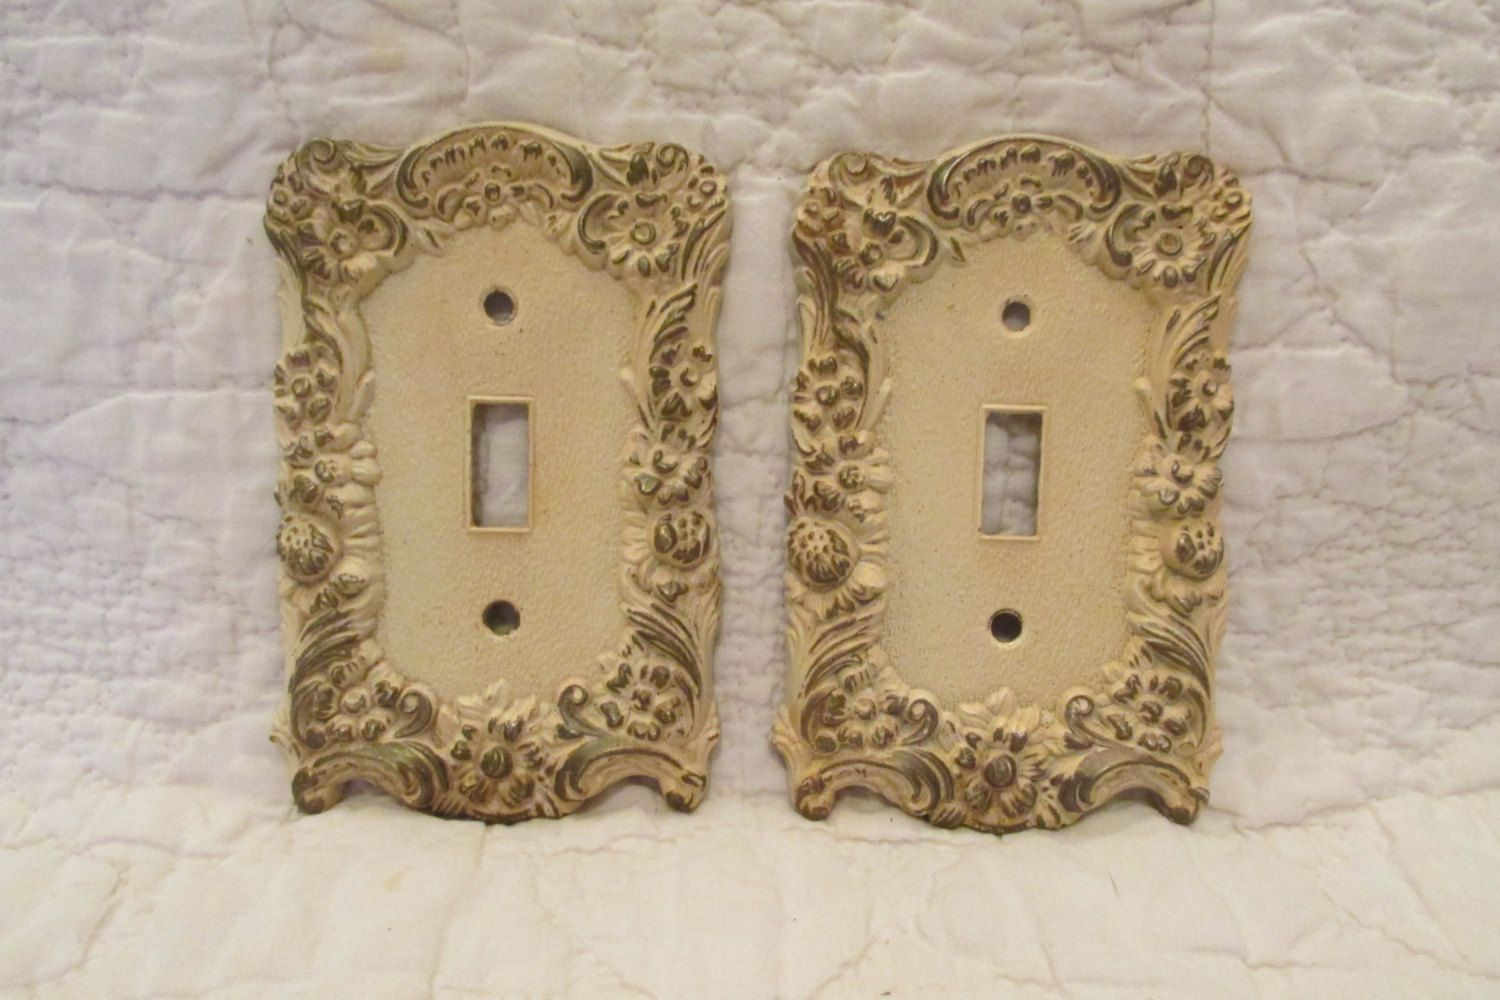 Vintage Light Switch Plate Covers 2 Vintage Light Switch Covers Single Switch Hollywood Regency